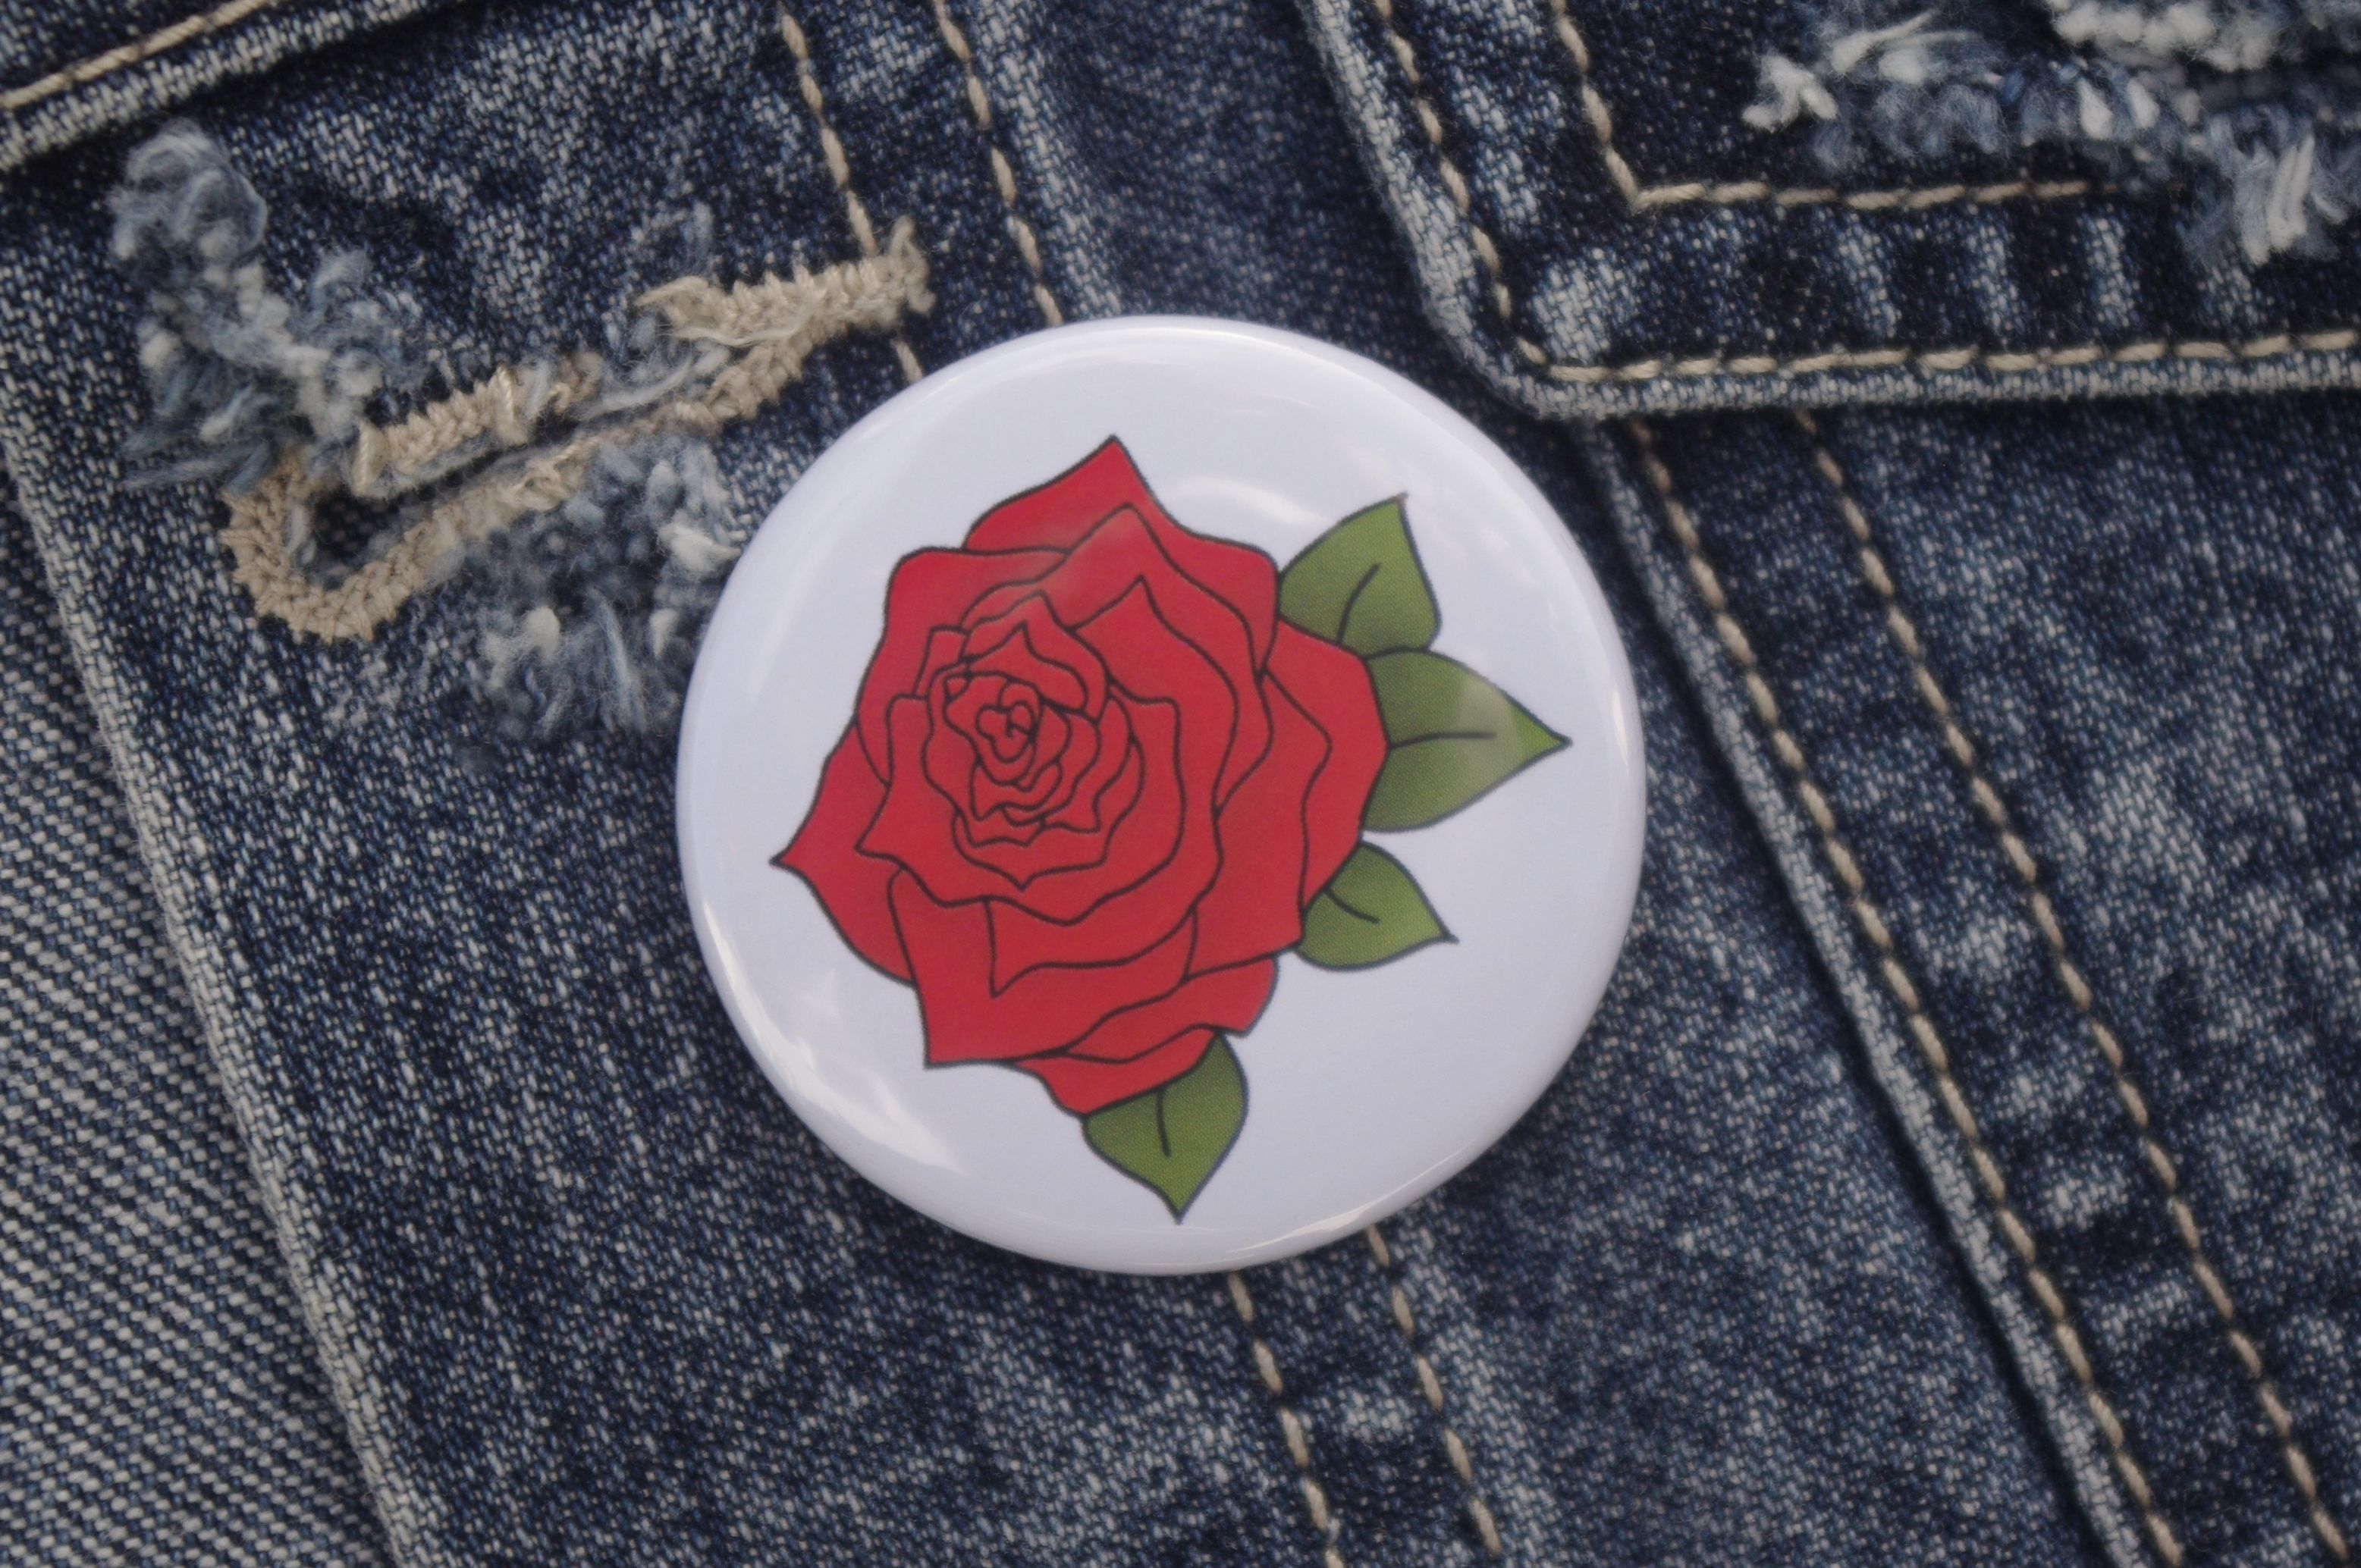 accessories roses flowers gift tattooart stockingfiller pin pinbadge badge floral alternative rose tattoo clothing